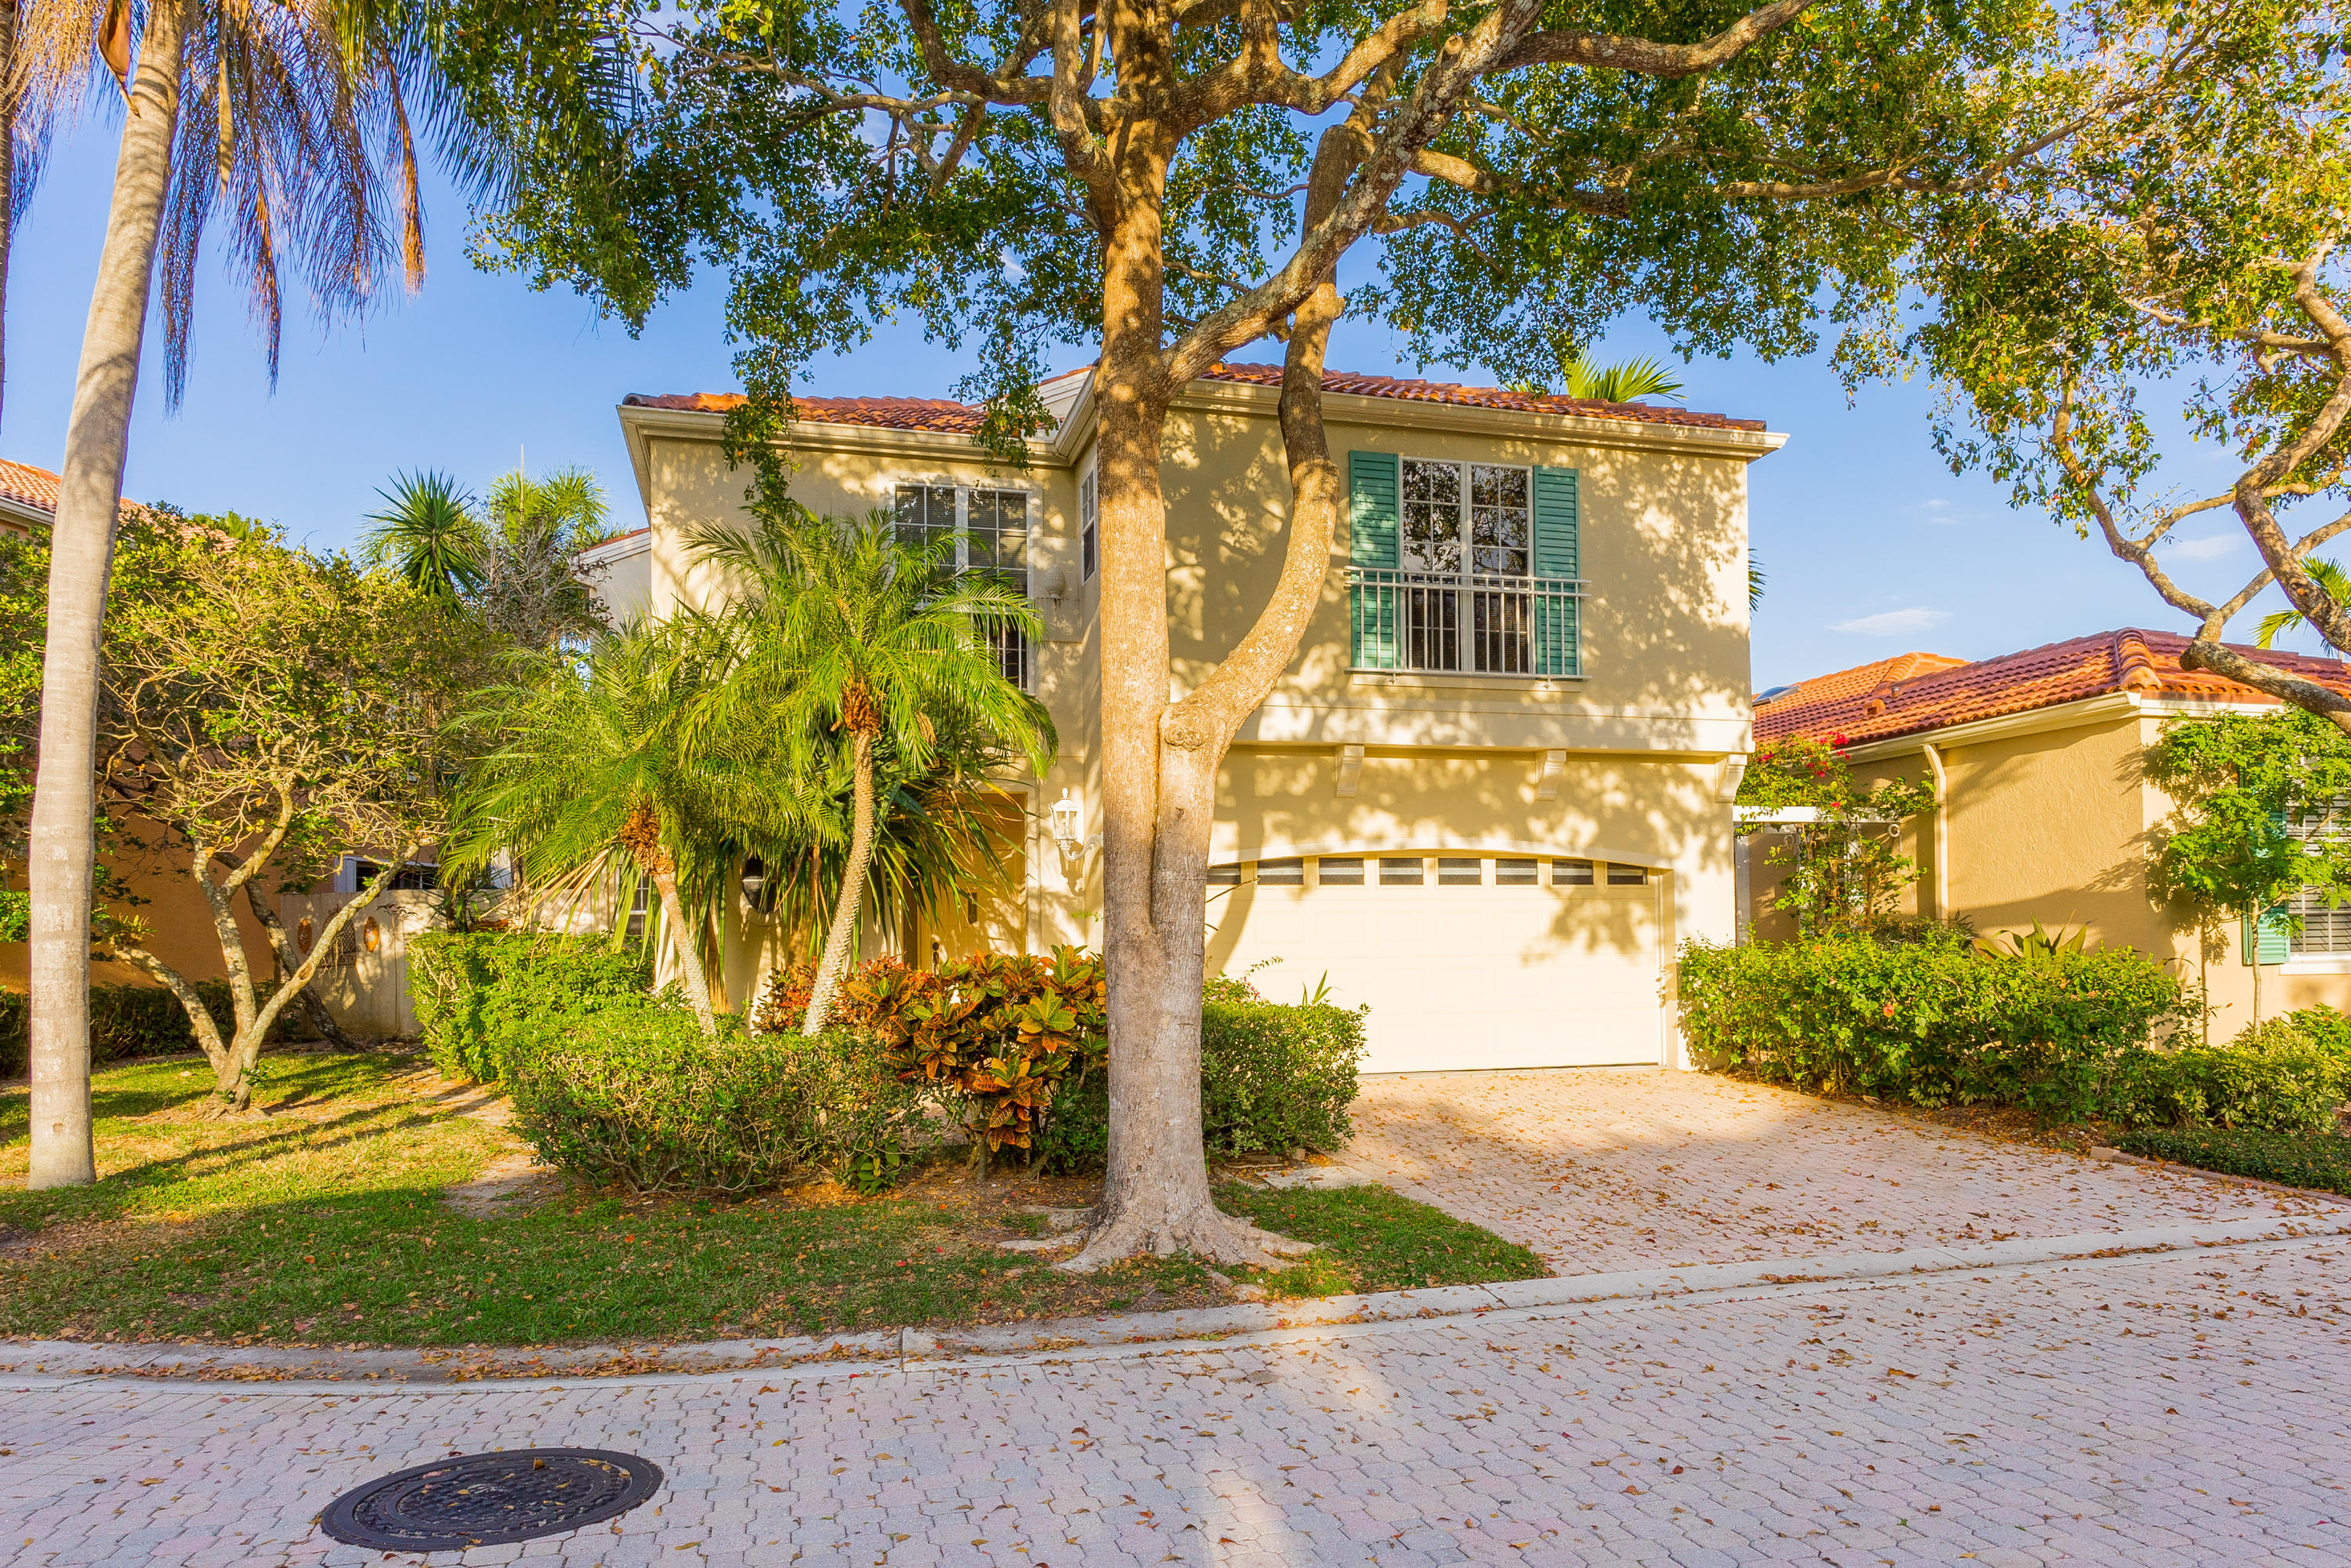 17 VIA AURELIA, PALM BEACH GARDENS, FL 33418